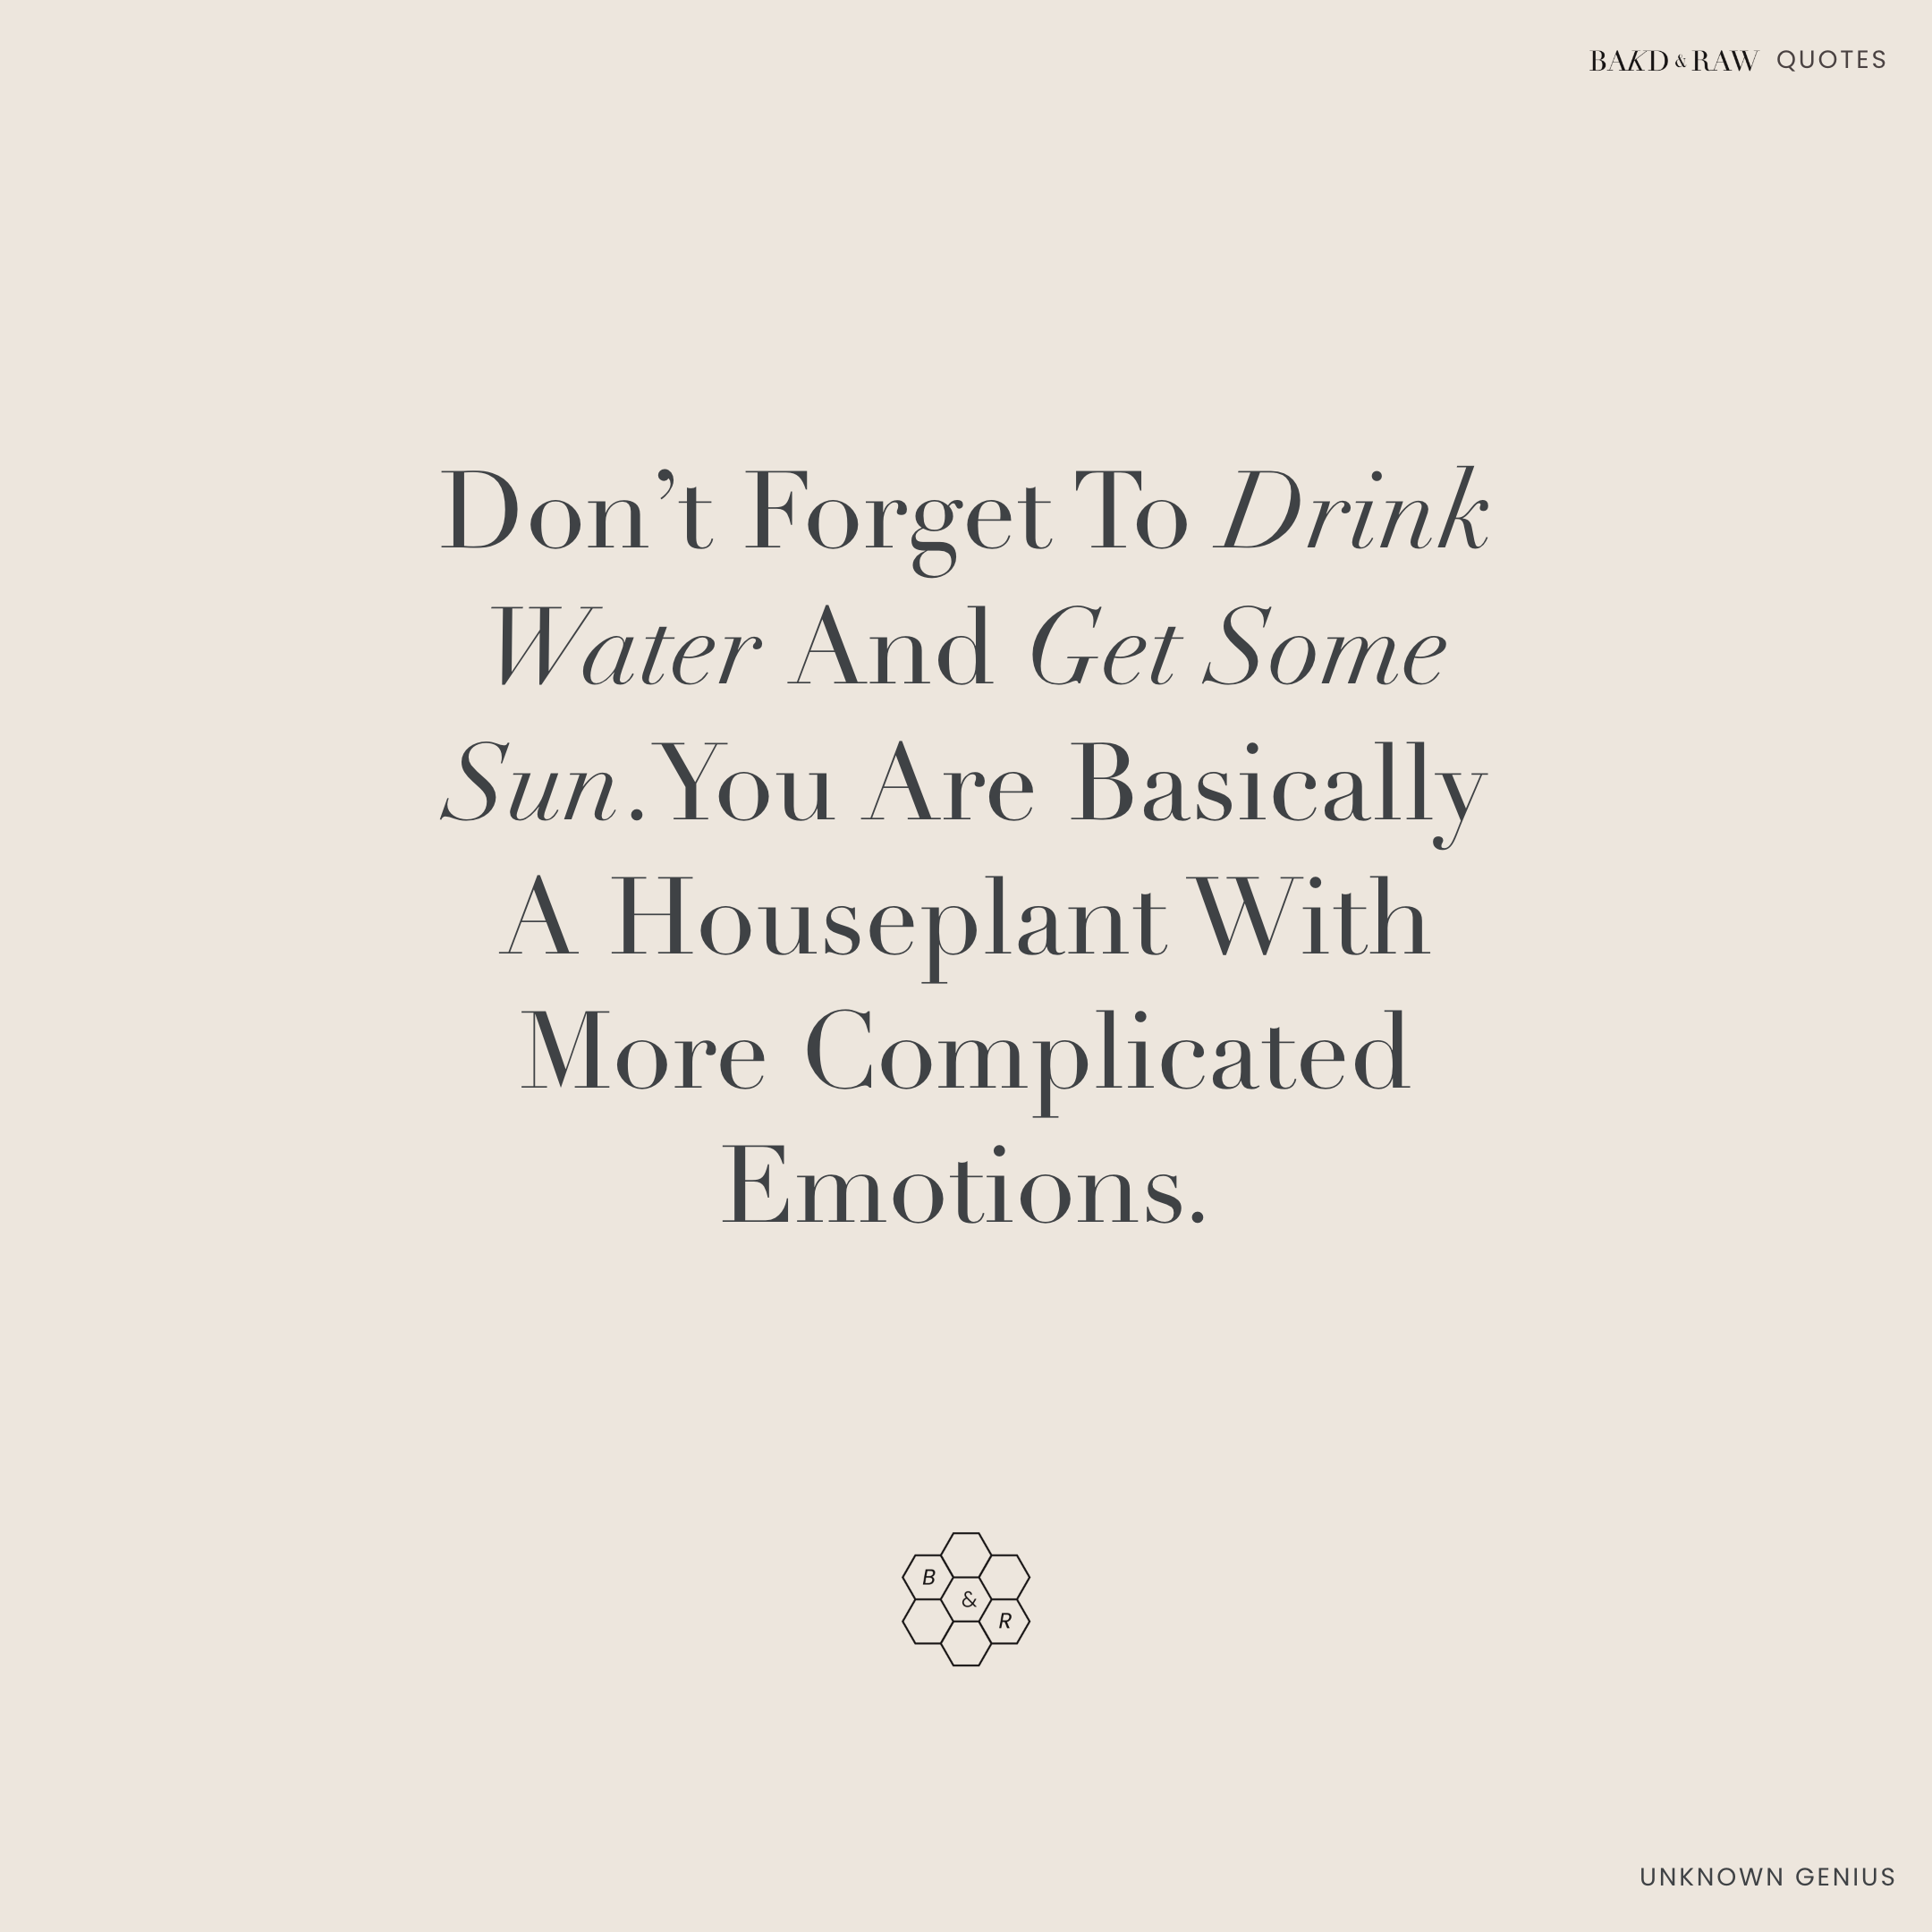 Drink water, Bakd&Raw Food Quotes by Karolin Baitinger